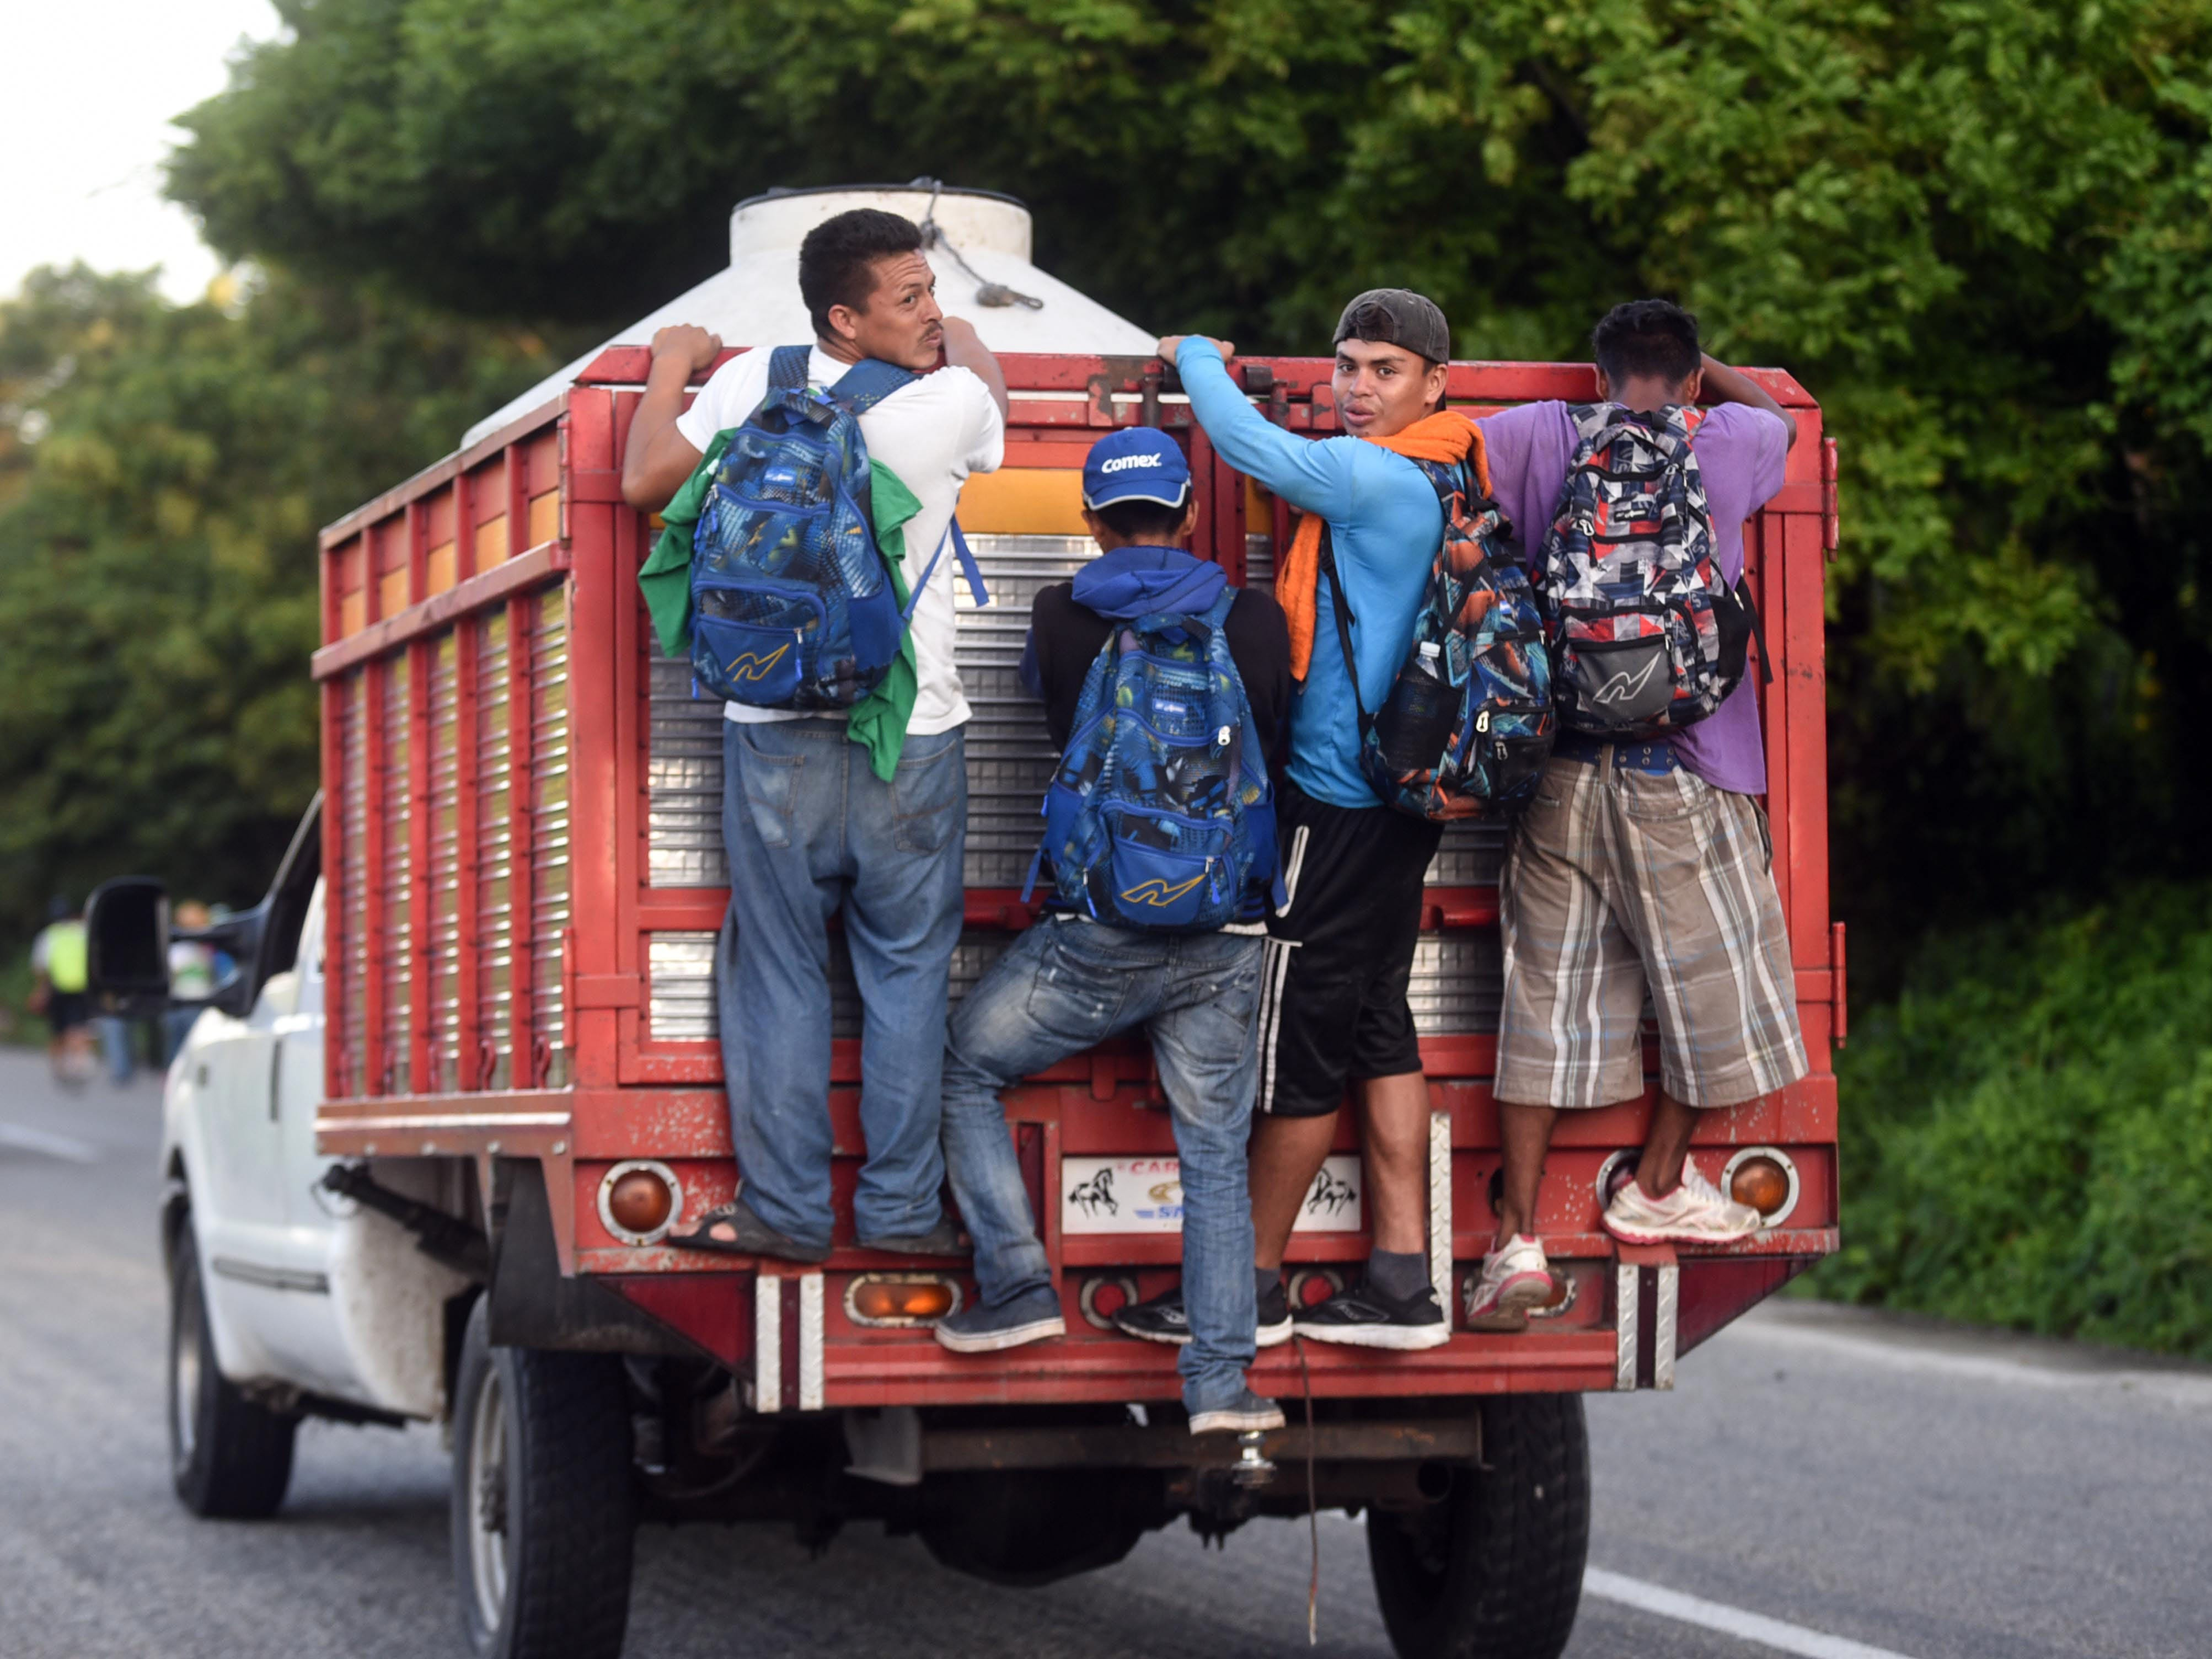 Central American travel standing on the back of a truck in Mapastepec on their way to Pijijiapan Chiapas state, Mexico, Oct. 25, 2018.